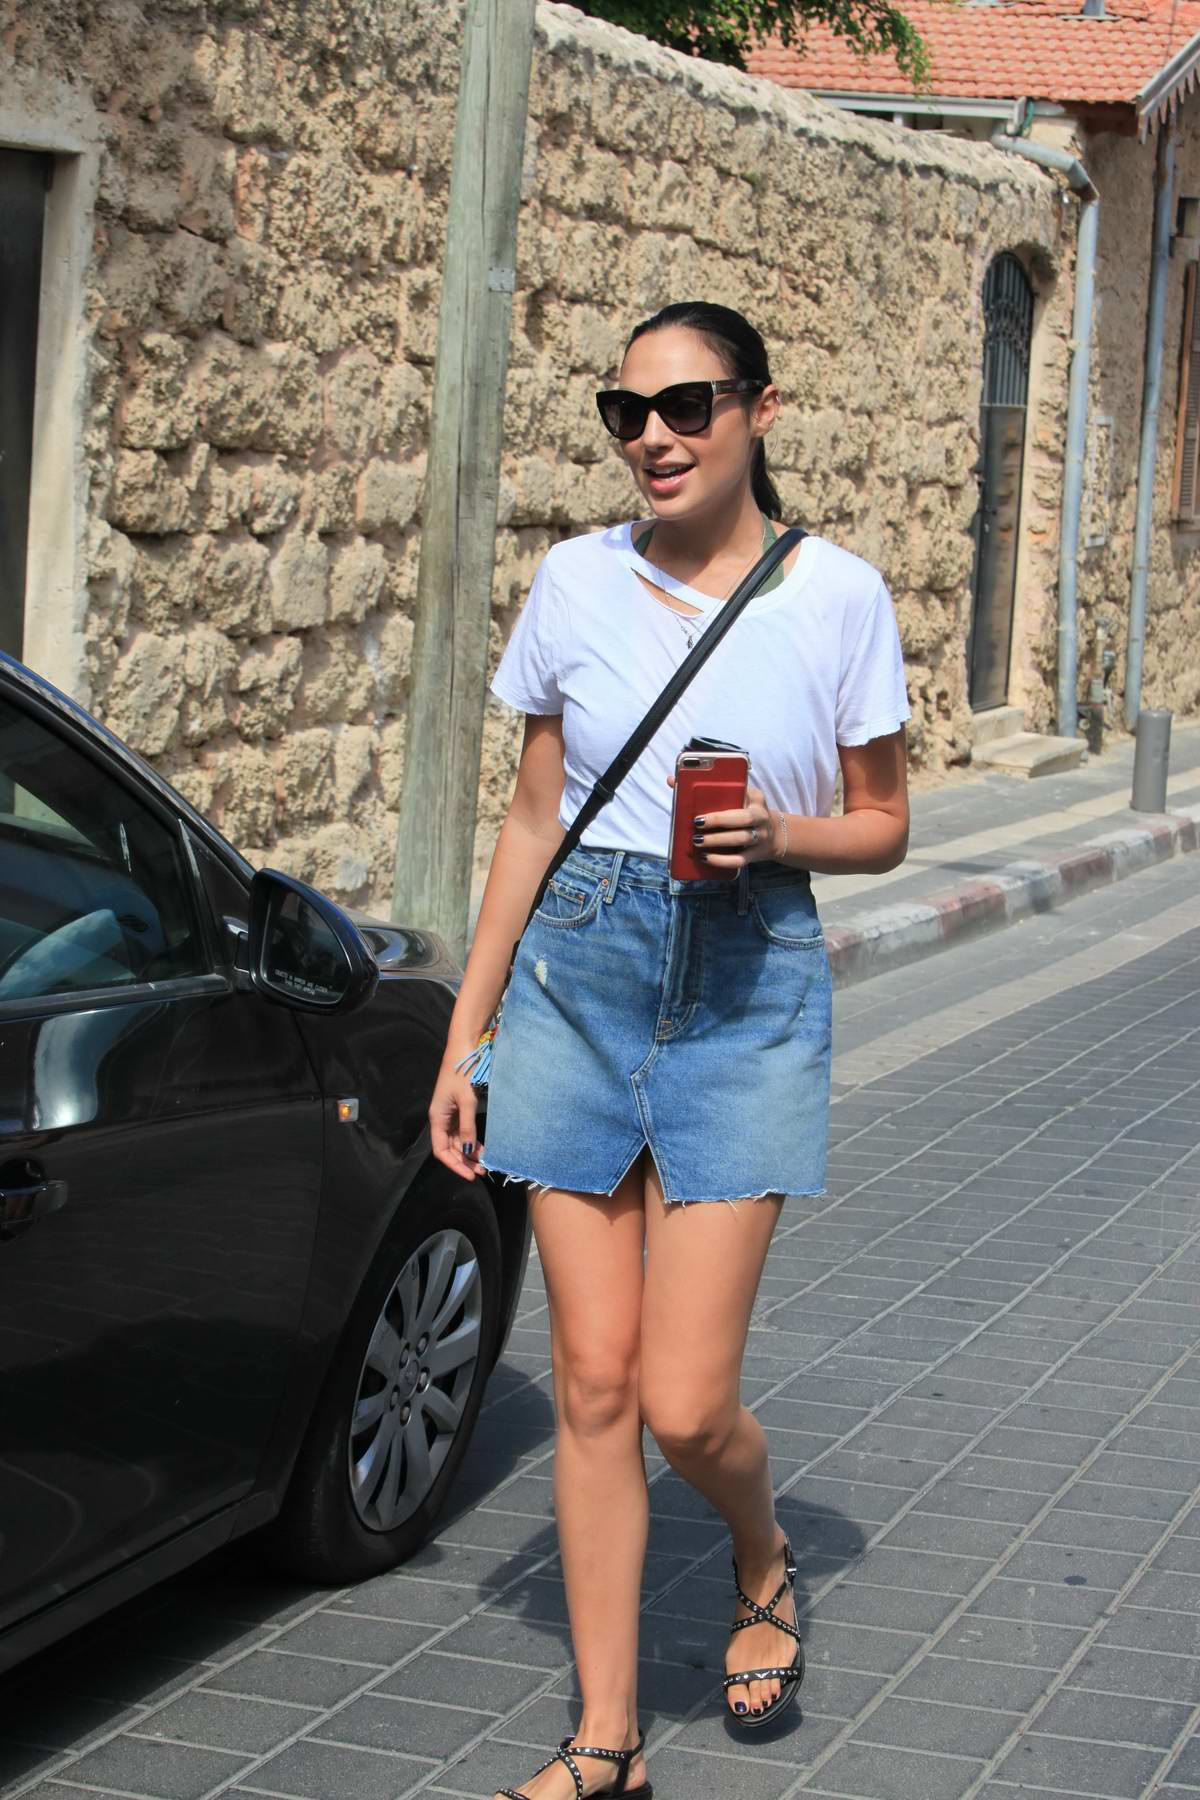 Gal Gadot out and about with a friend in Tel Aviv, Israel